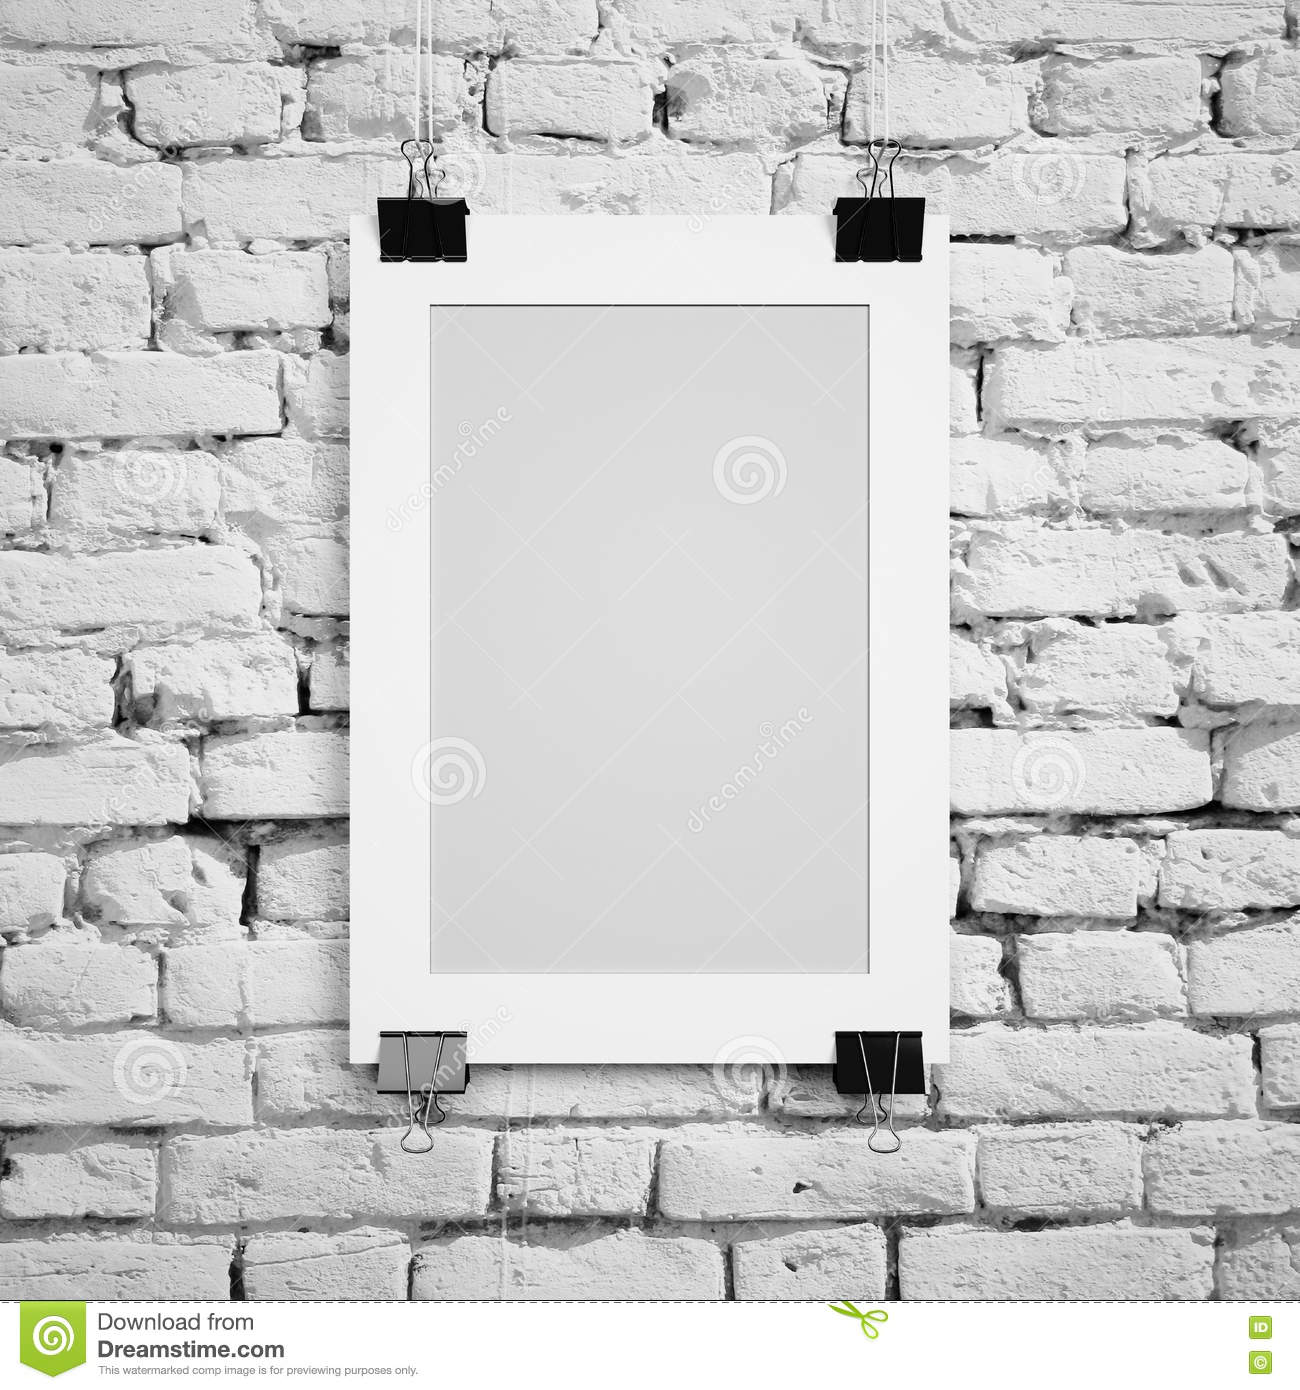 blank poster hanging in a frame on a background of white painted brick wall stock illustration. Black Bedroom Furniture Sets. Home Design Ideas